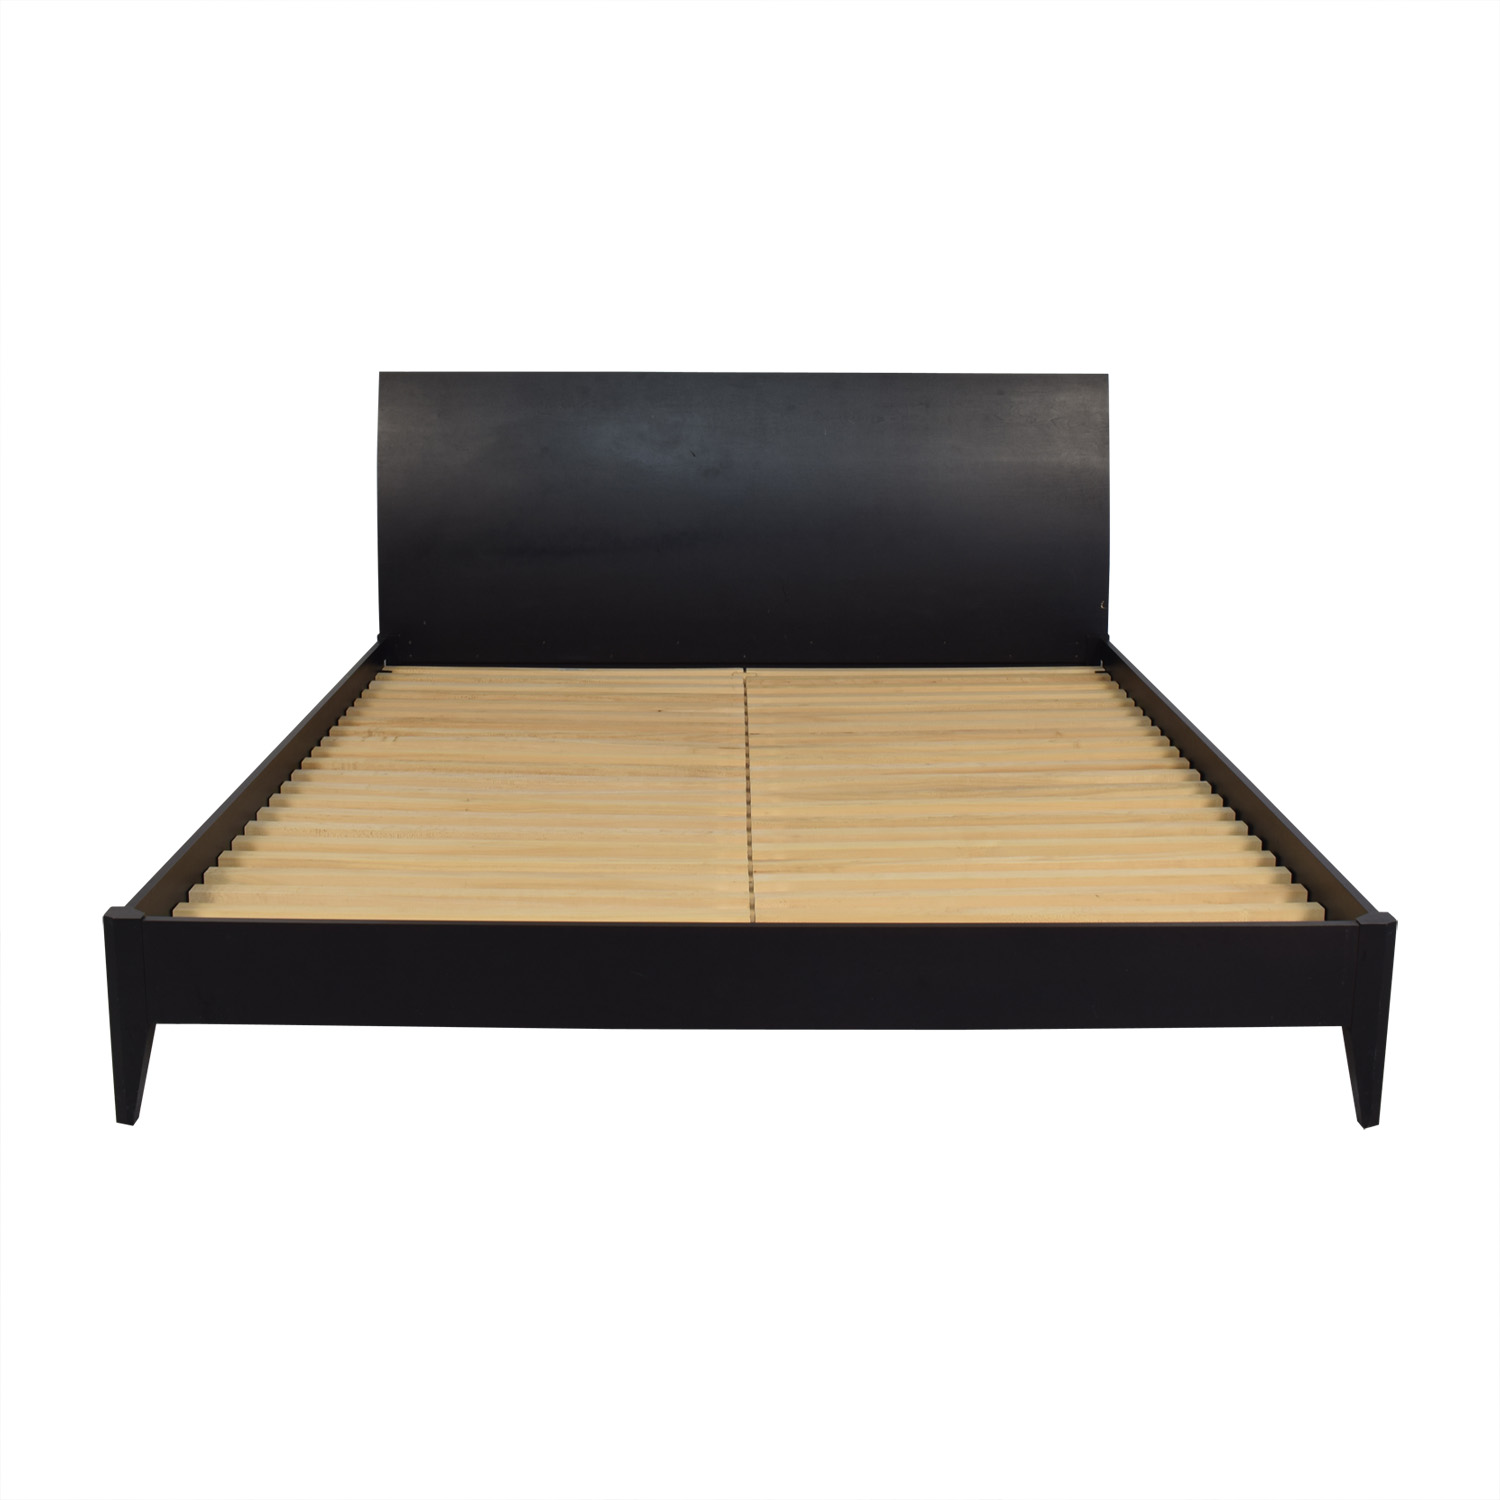 Baronet Baronet Wood King Bed Frame nyc